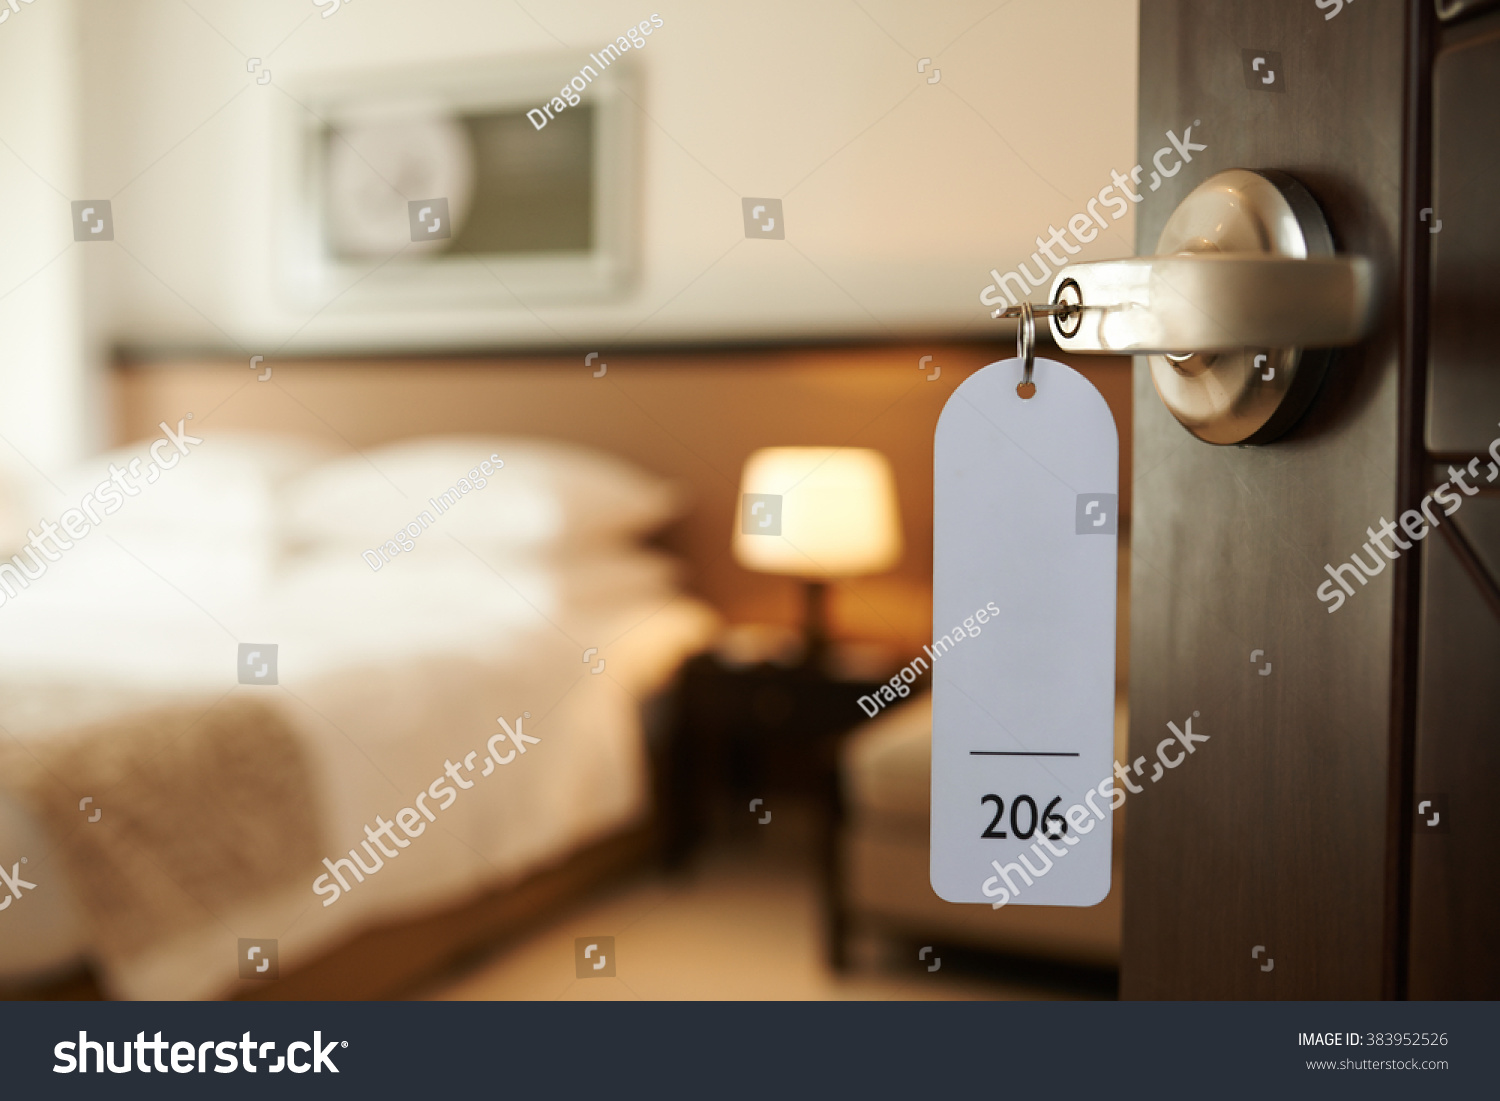 stock-photo-opened-door-of-hotel-room-with-key-in-the-lock-383952526.jpg